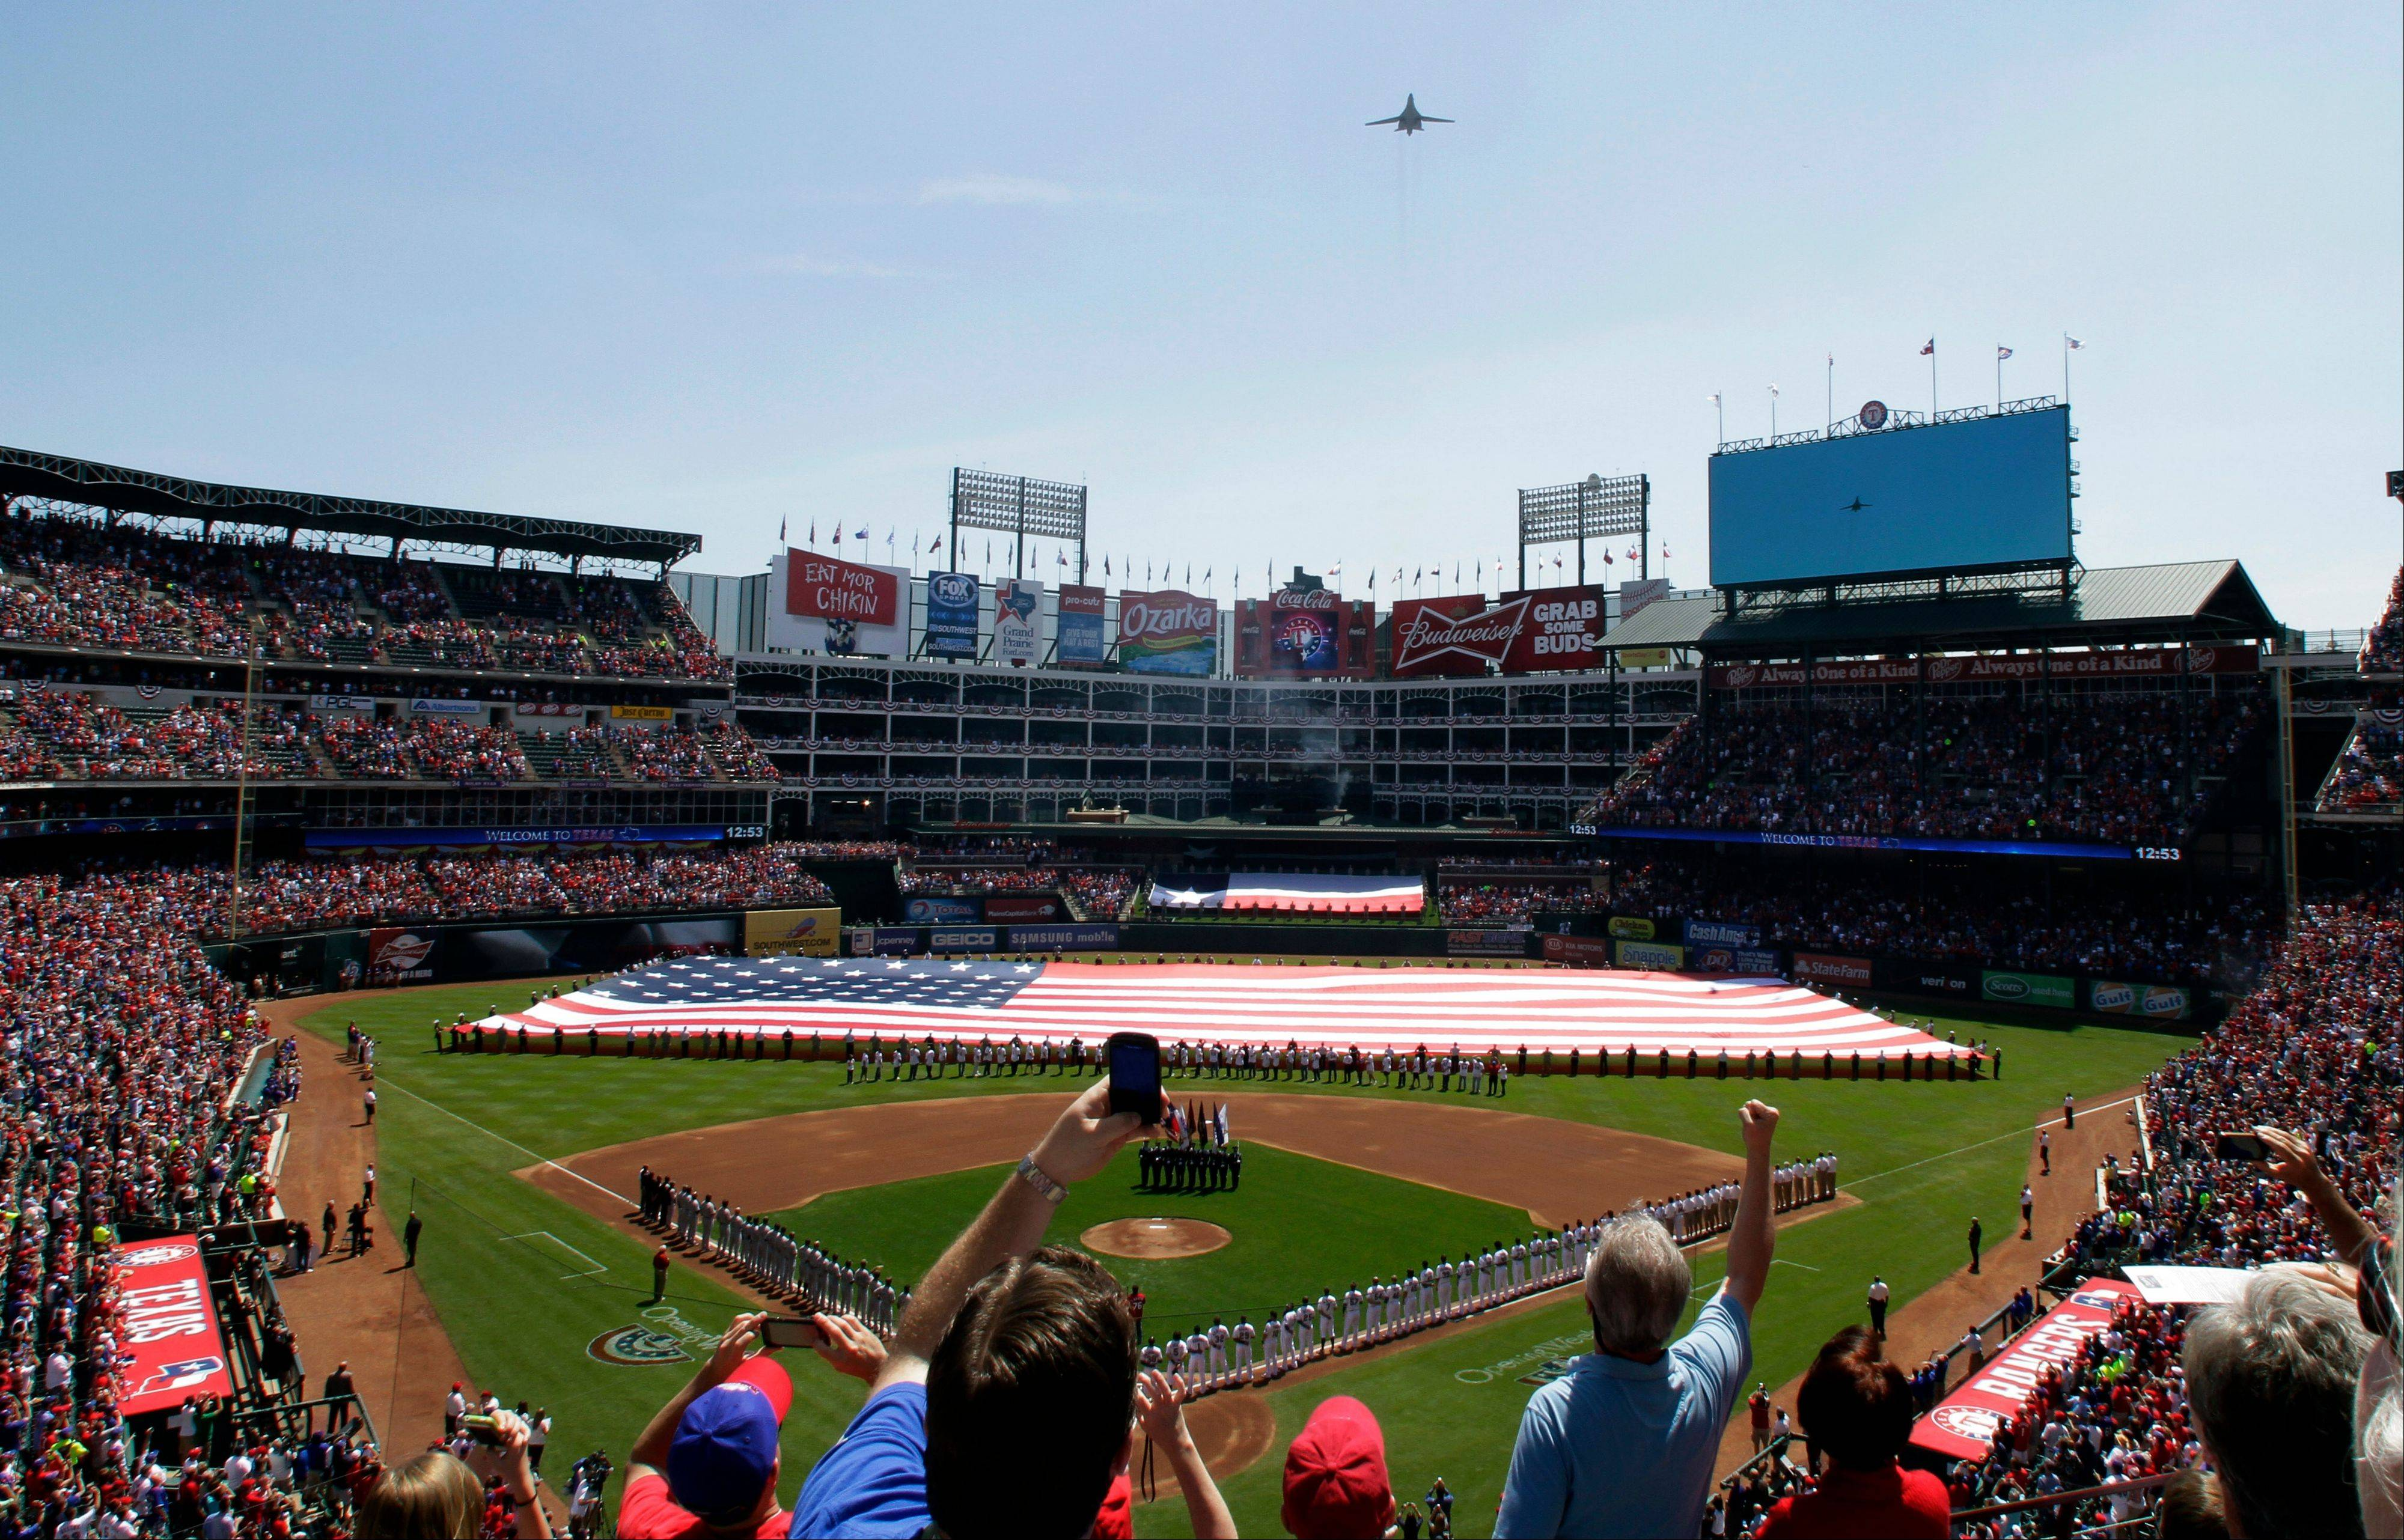 A B-1 Bombers from the 7th Bomb Wing of Dyess Air Force Base in Abilene, Texas flies over Rangers stadium before a baseball game between the Texas Rangers and the Chicago White Sox Friday, April 6, 2012 in Arlington, Texas.